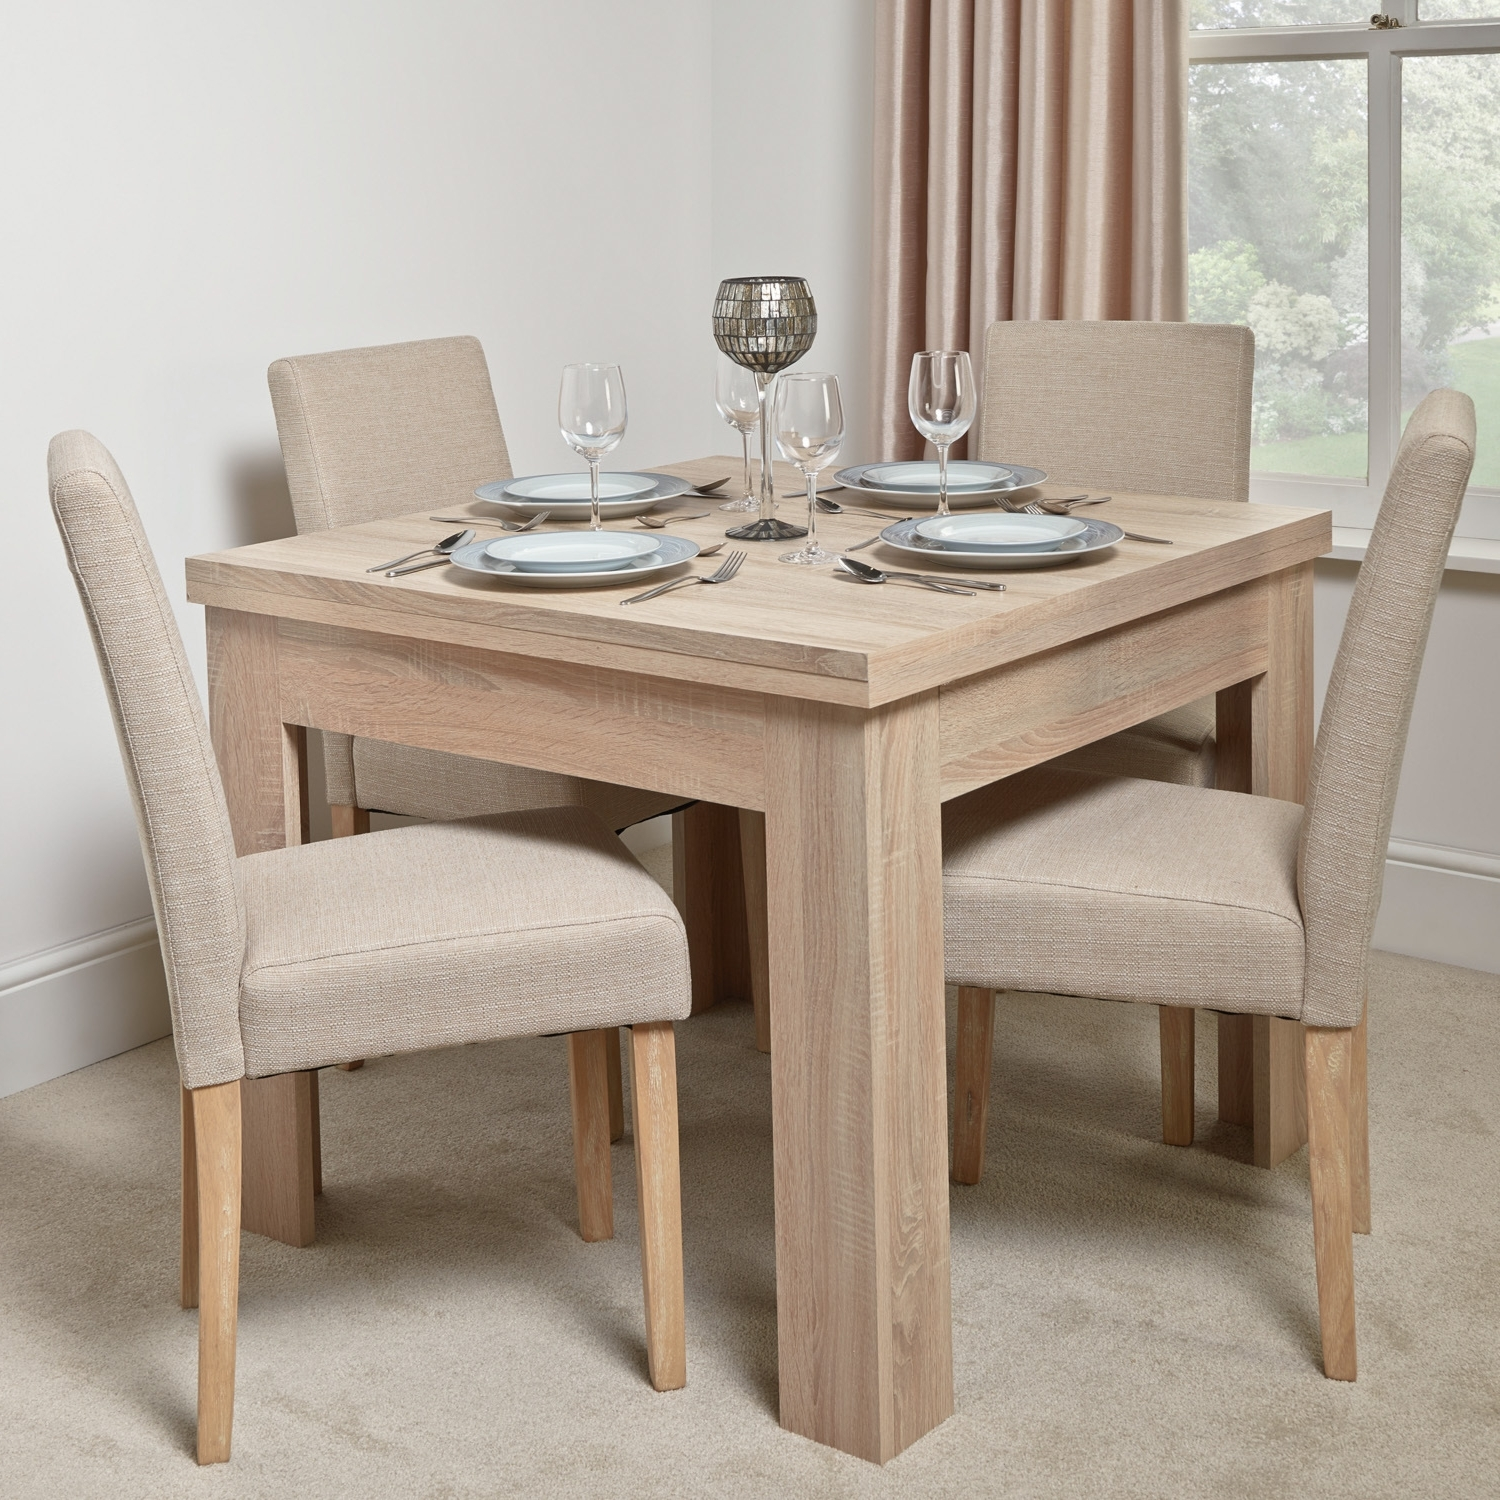 Extendable Dining Table And 6 Chairs Regarding Widely Used Calpe Flip Extending Dining Table (Gallery 13 of 25)